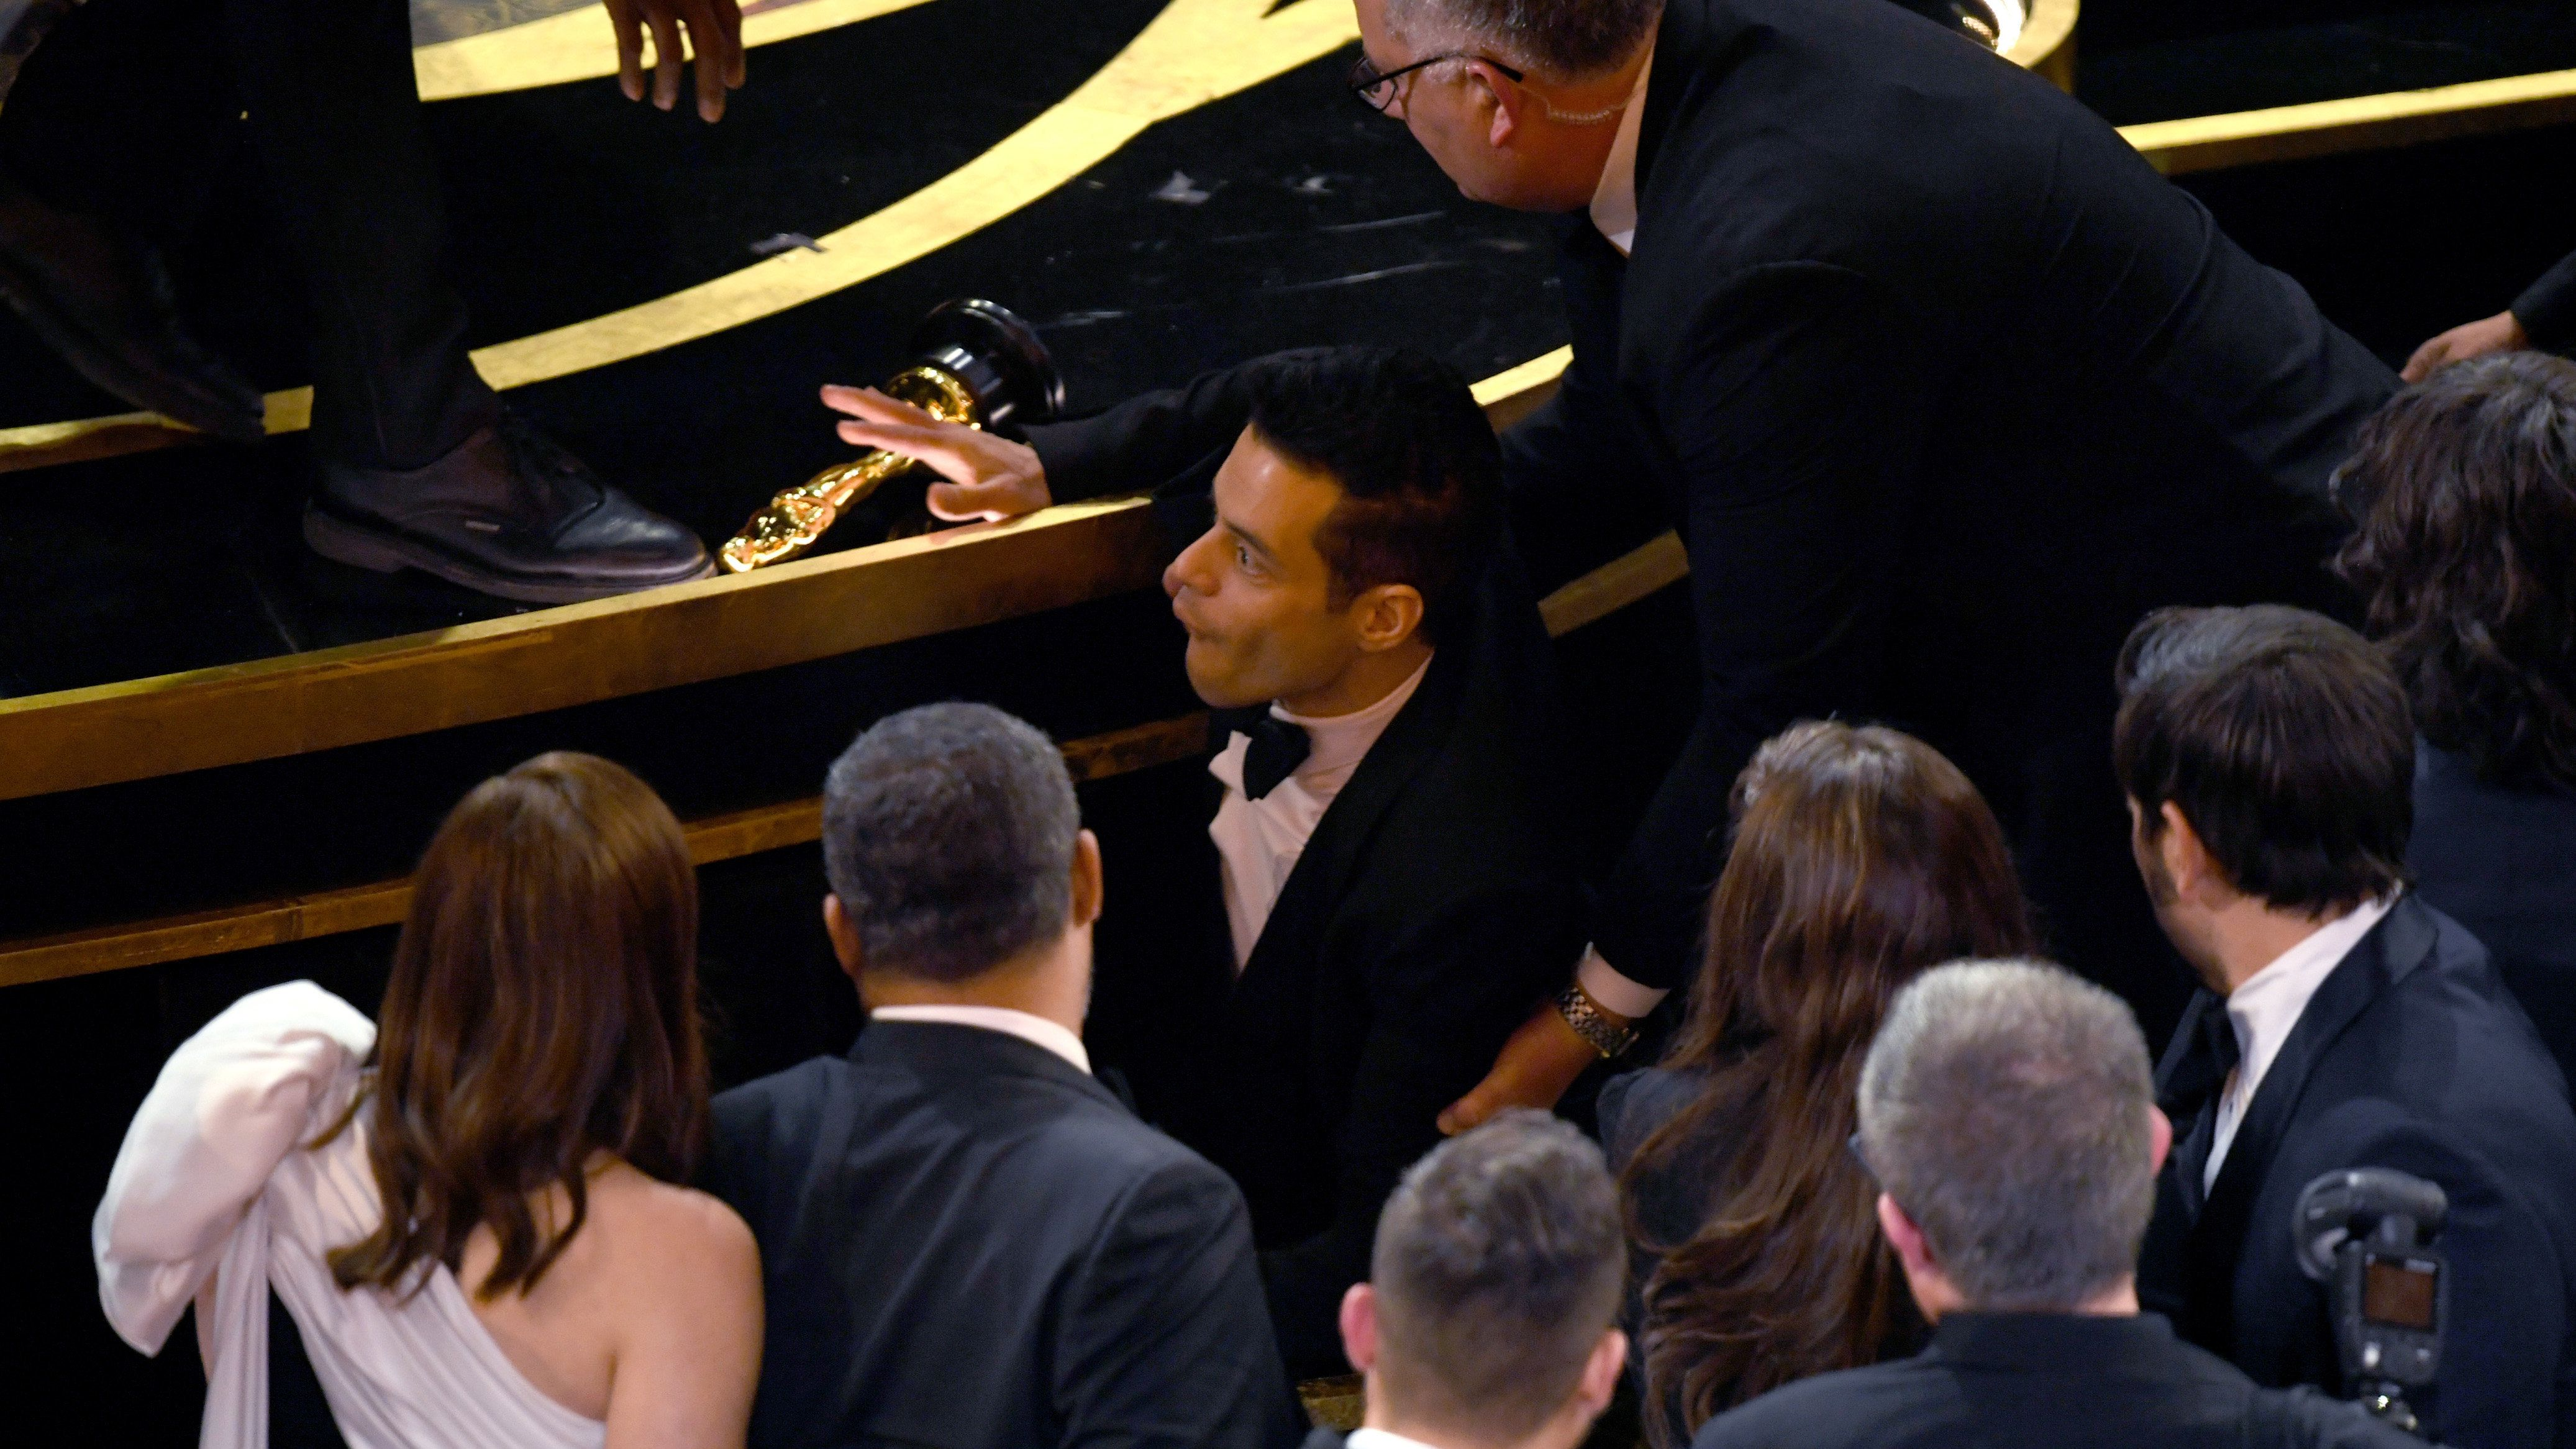 Rami Malek tried to hold on to his Oscar as he fell.